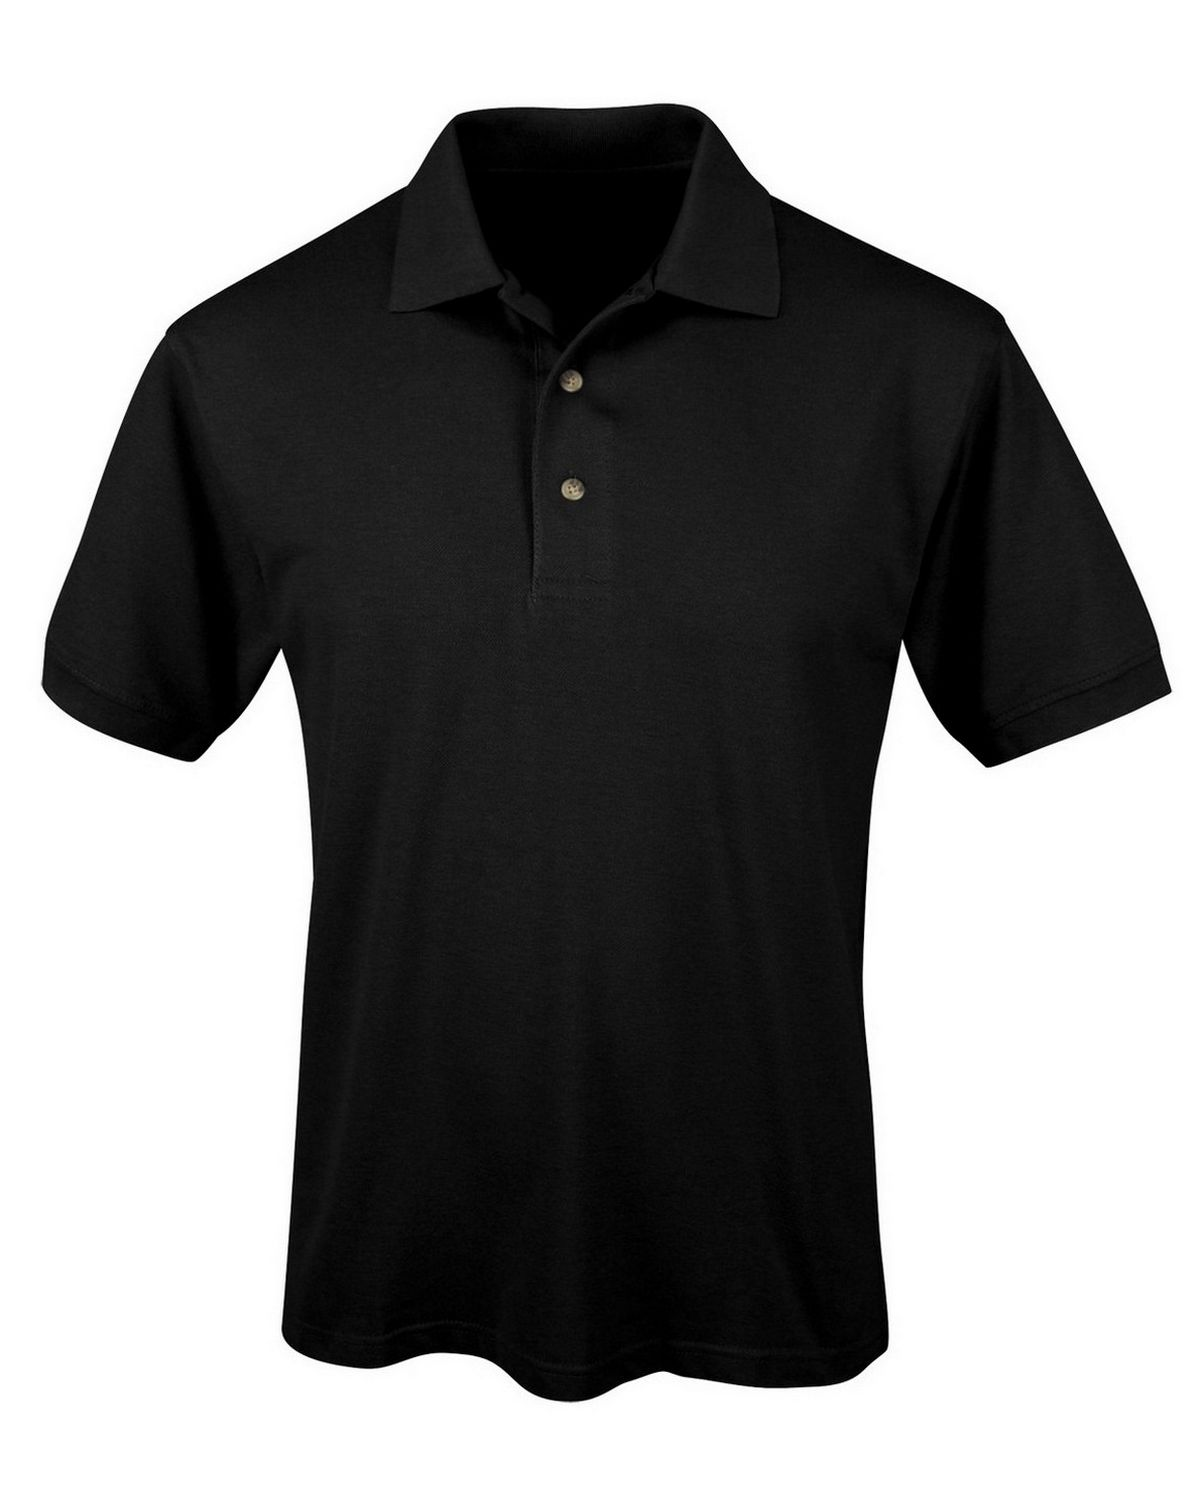 Tri-Mountain 095 Element - Black - XL 095